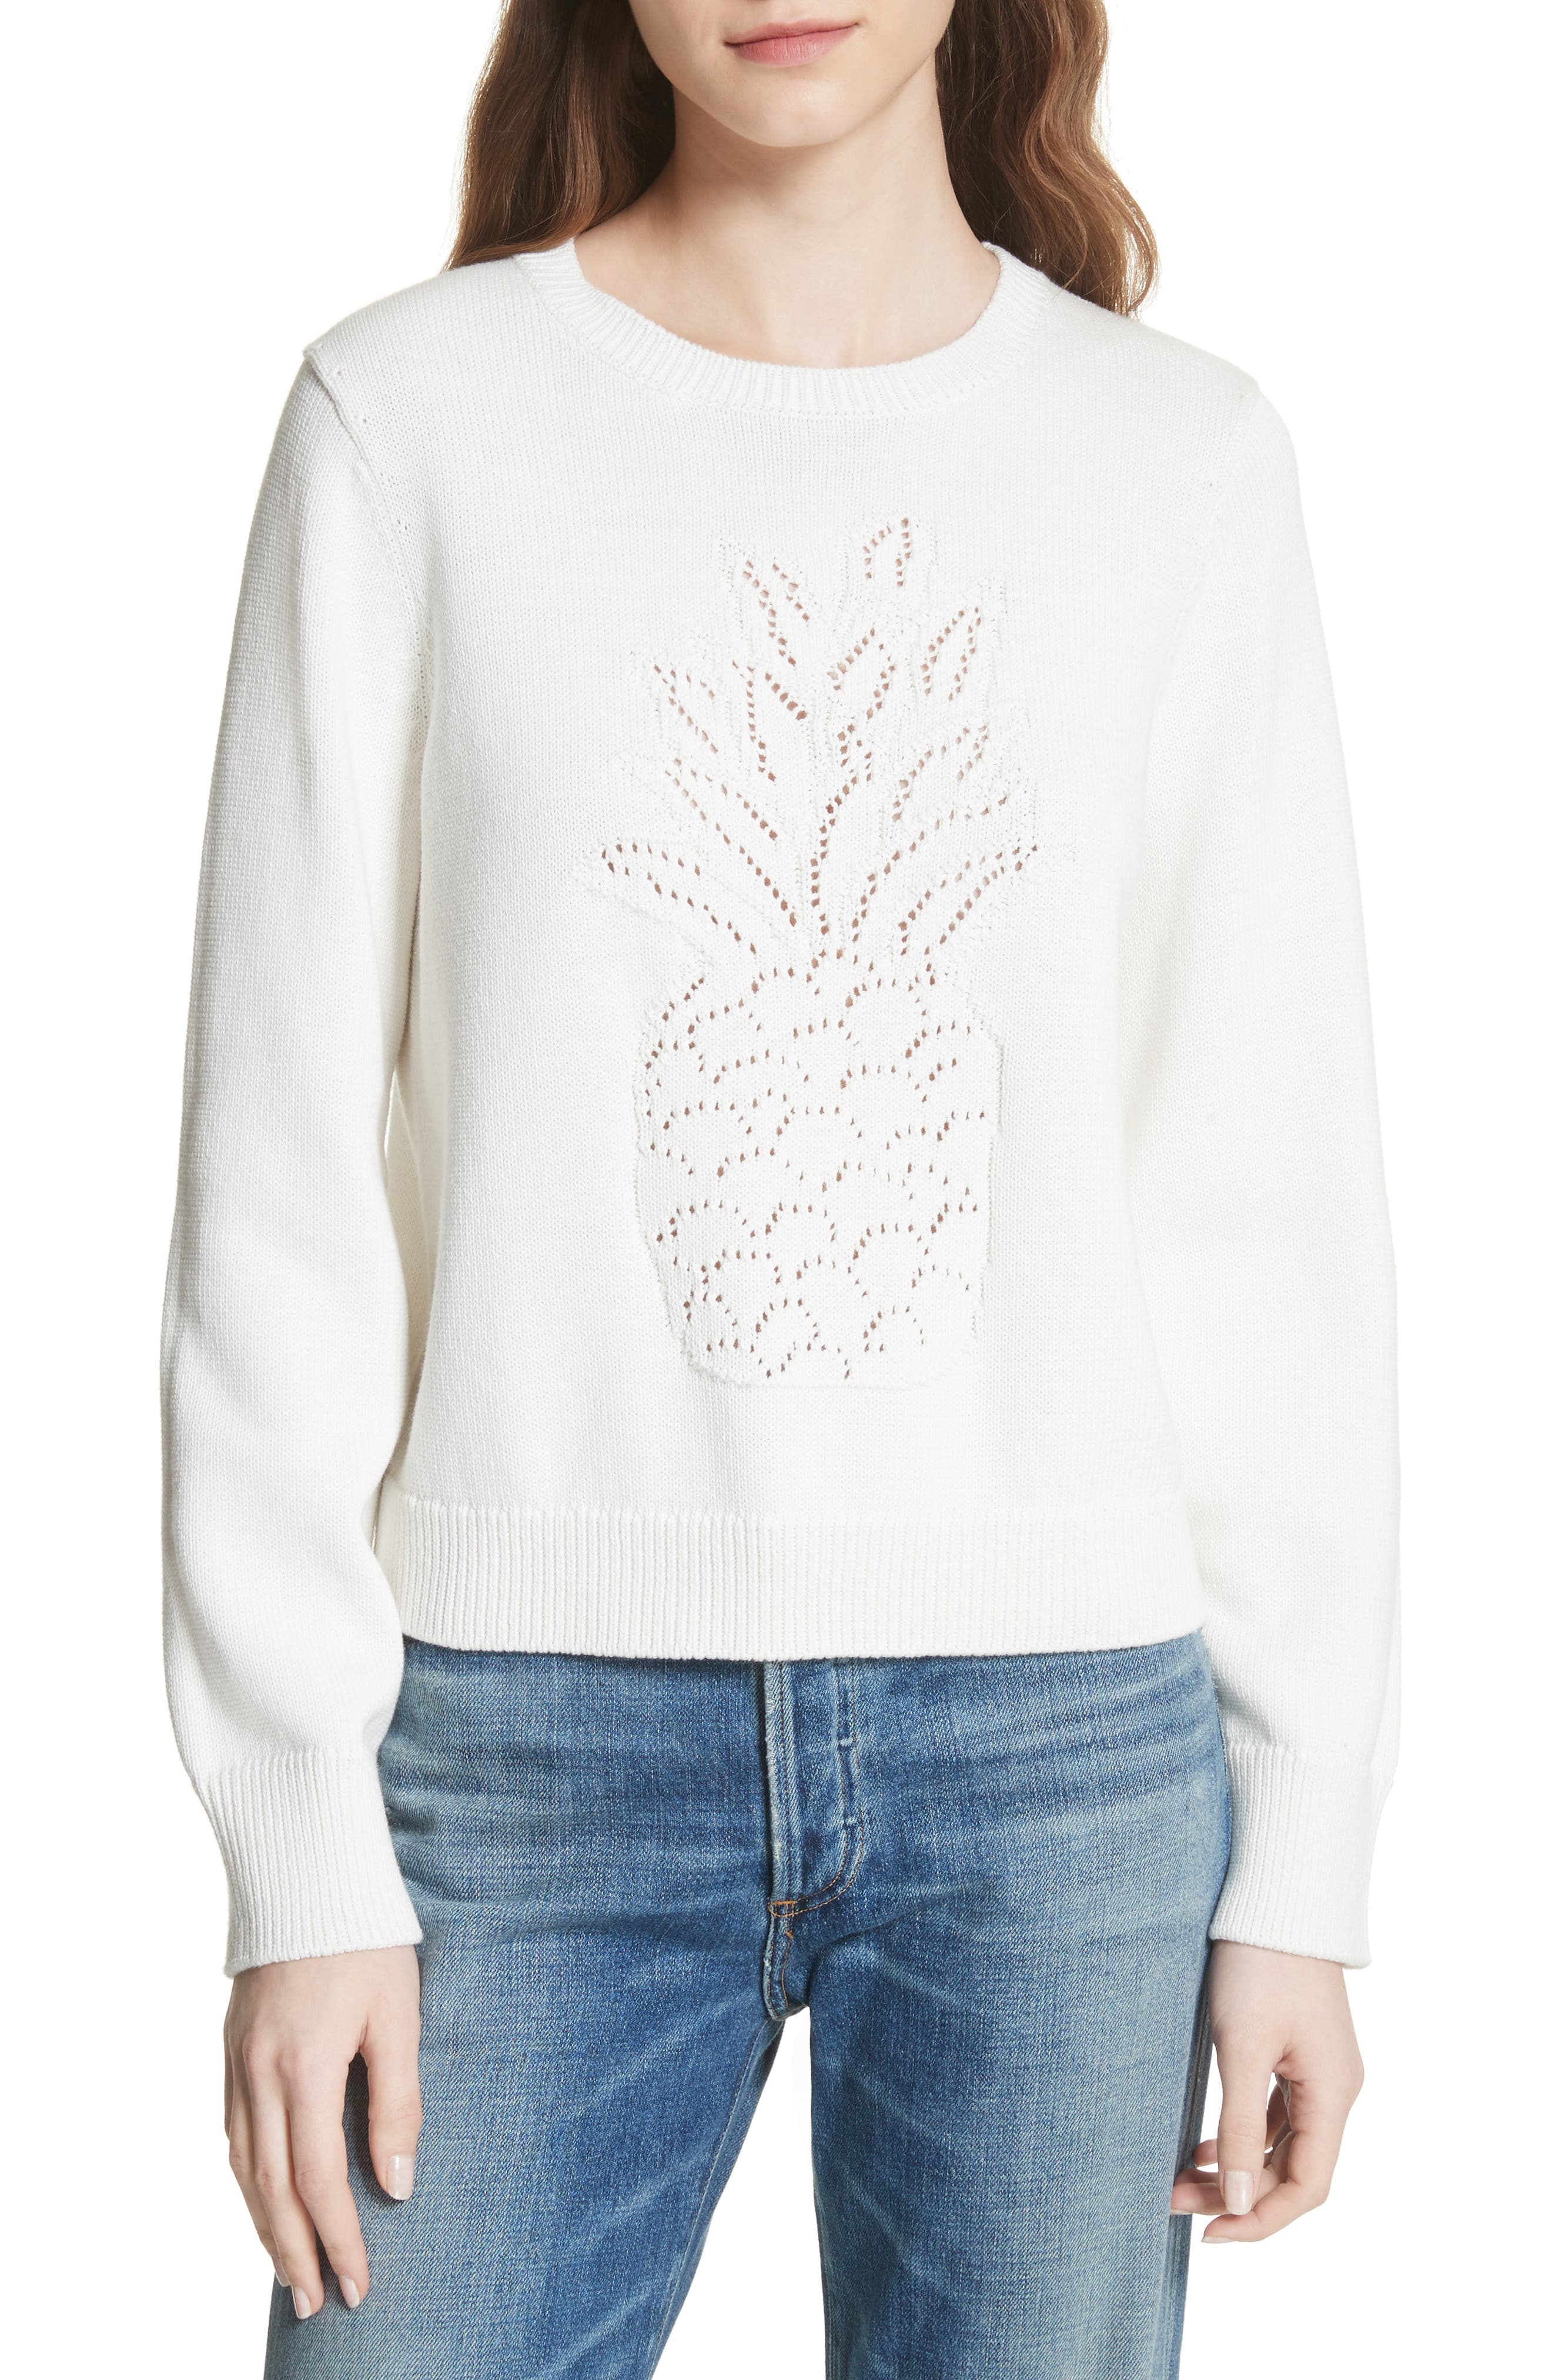 Barin Pineapple Cotton Sweater,                             Main thumbnail 1, color,                             120